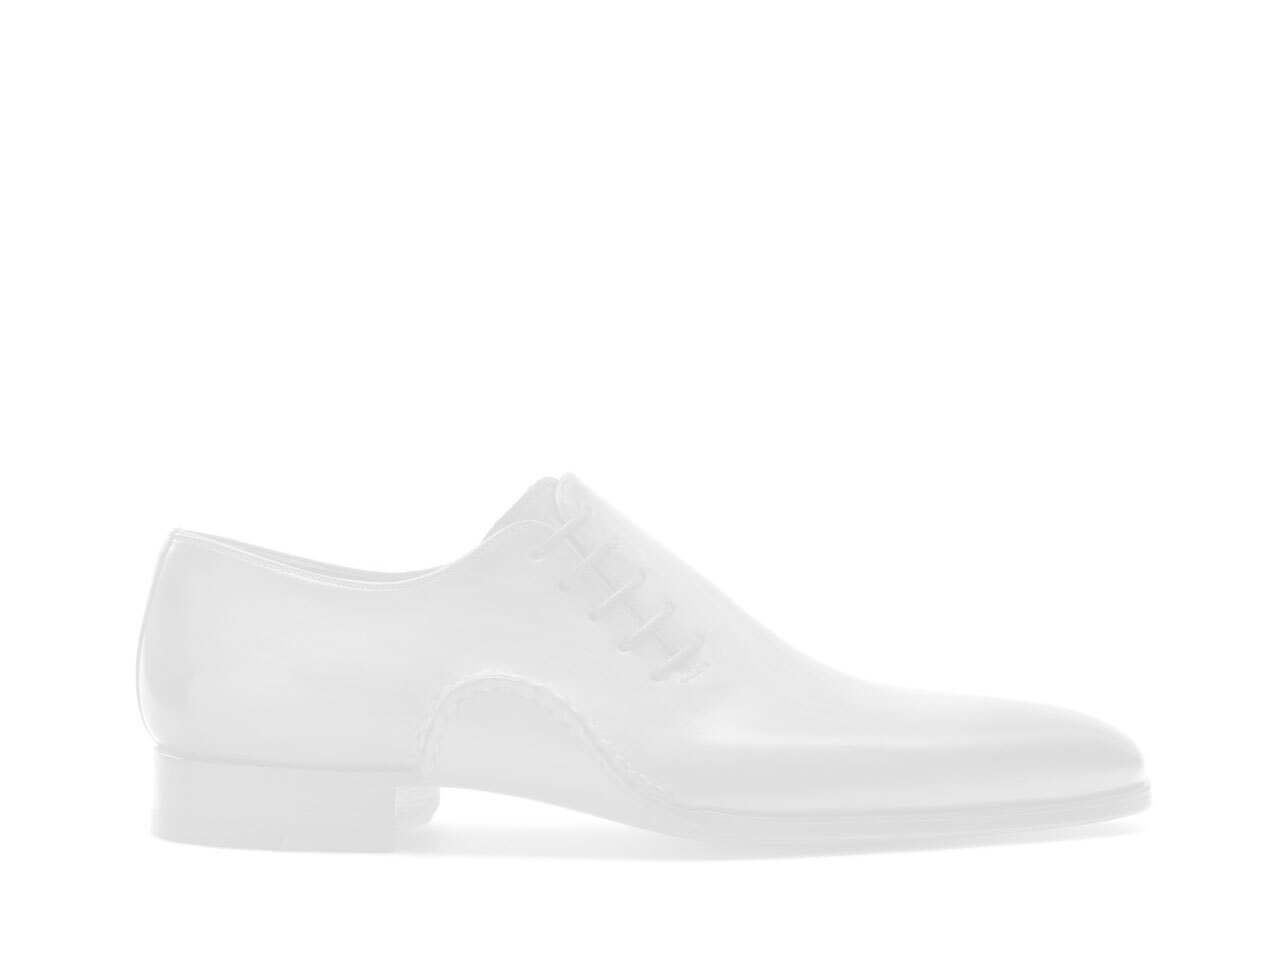 Pair of the Magnanni Nerja White and Cuero Men's Sneakers